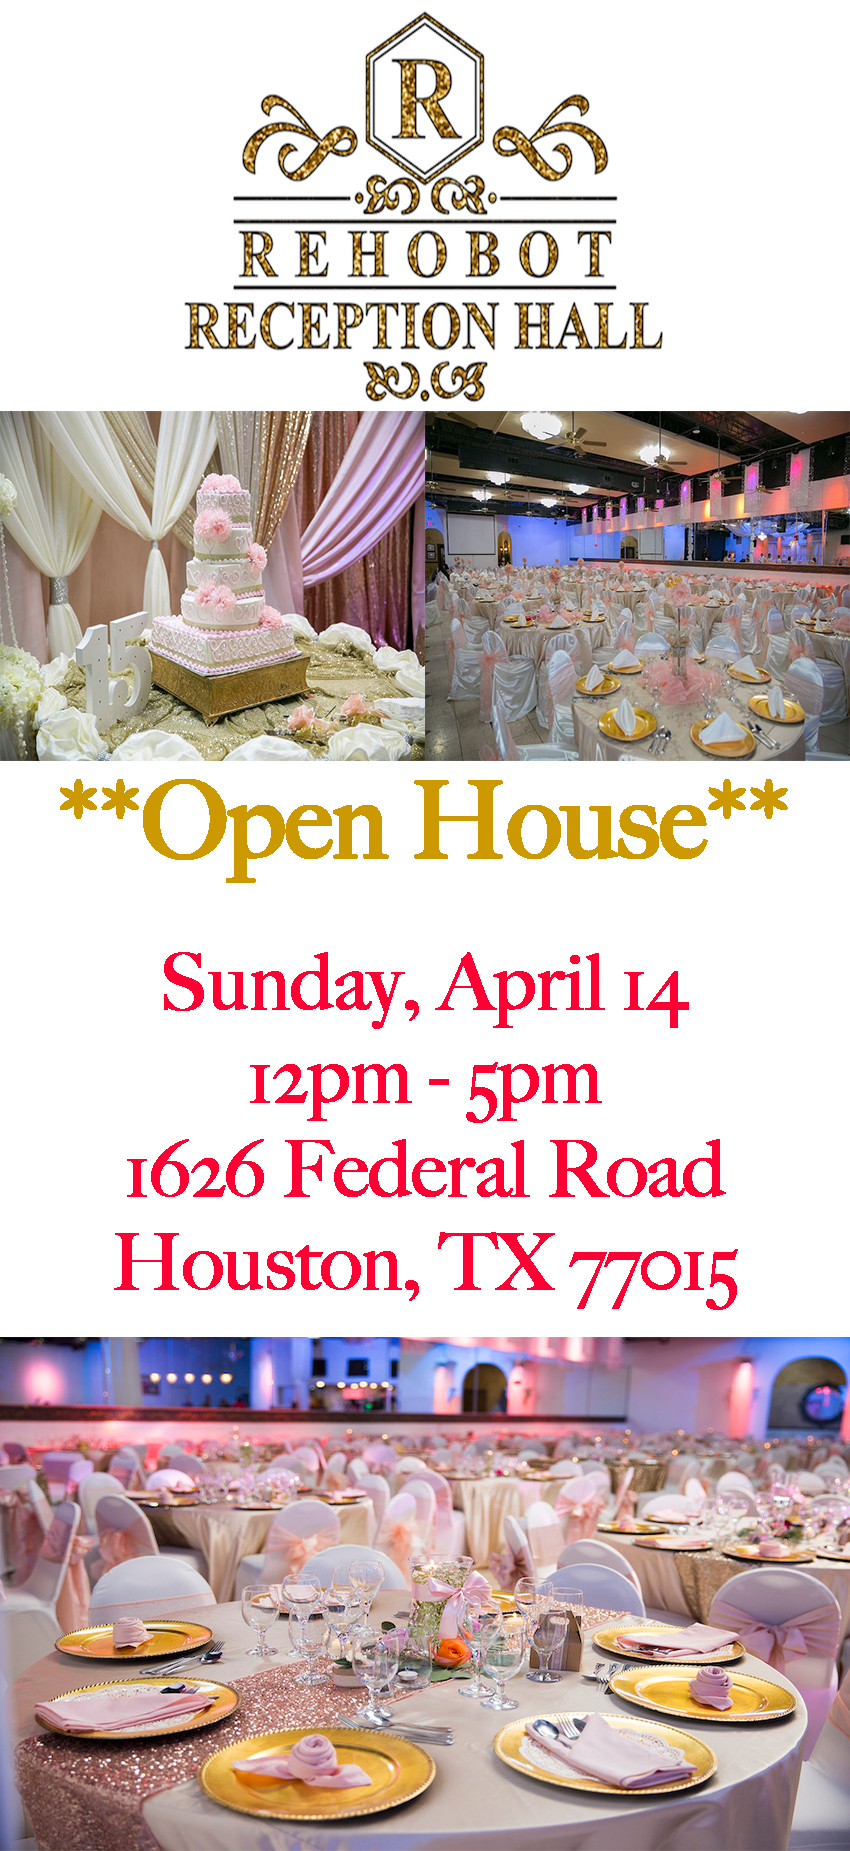 rehobot reception hall open house 2019